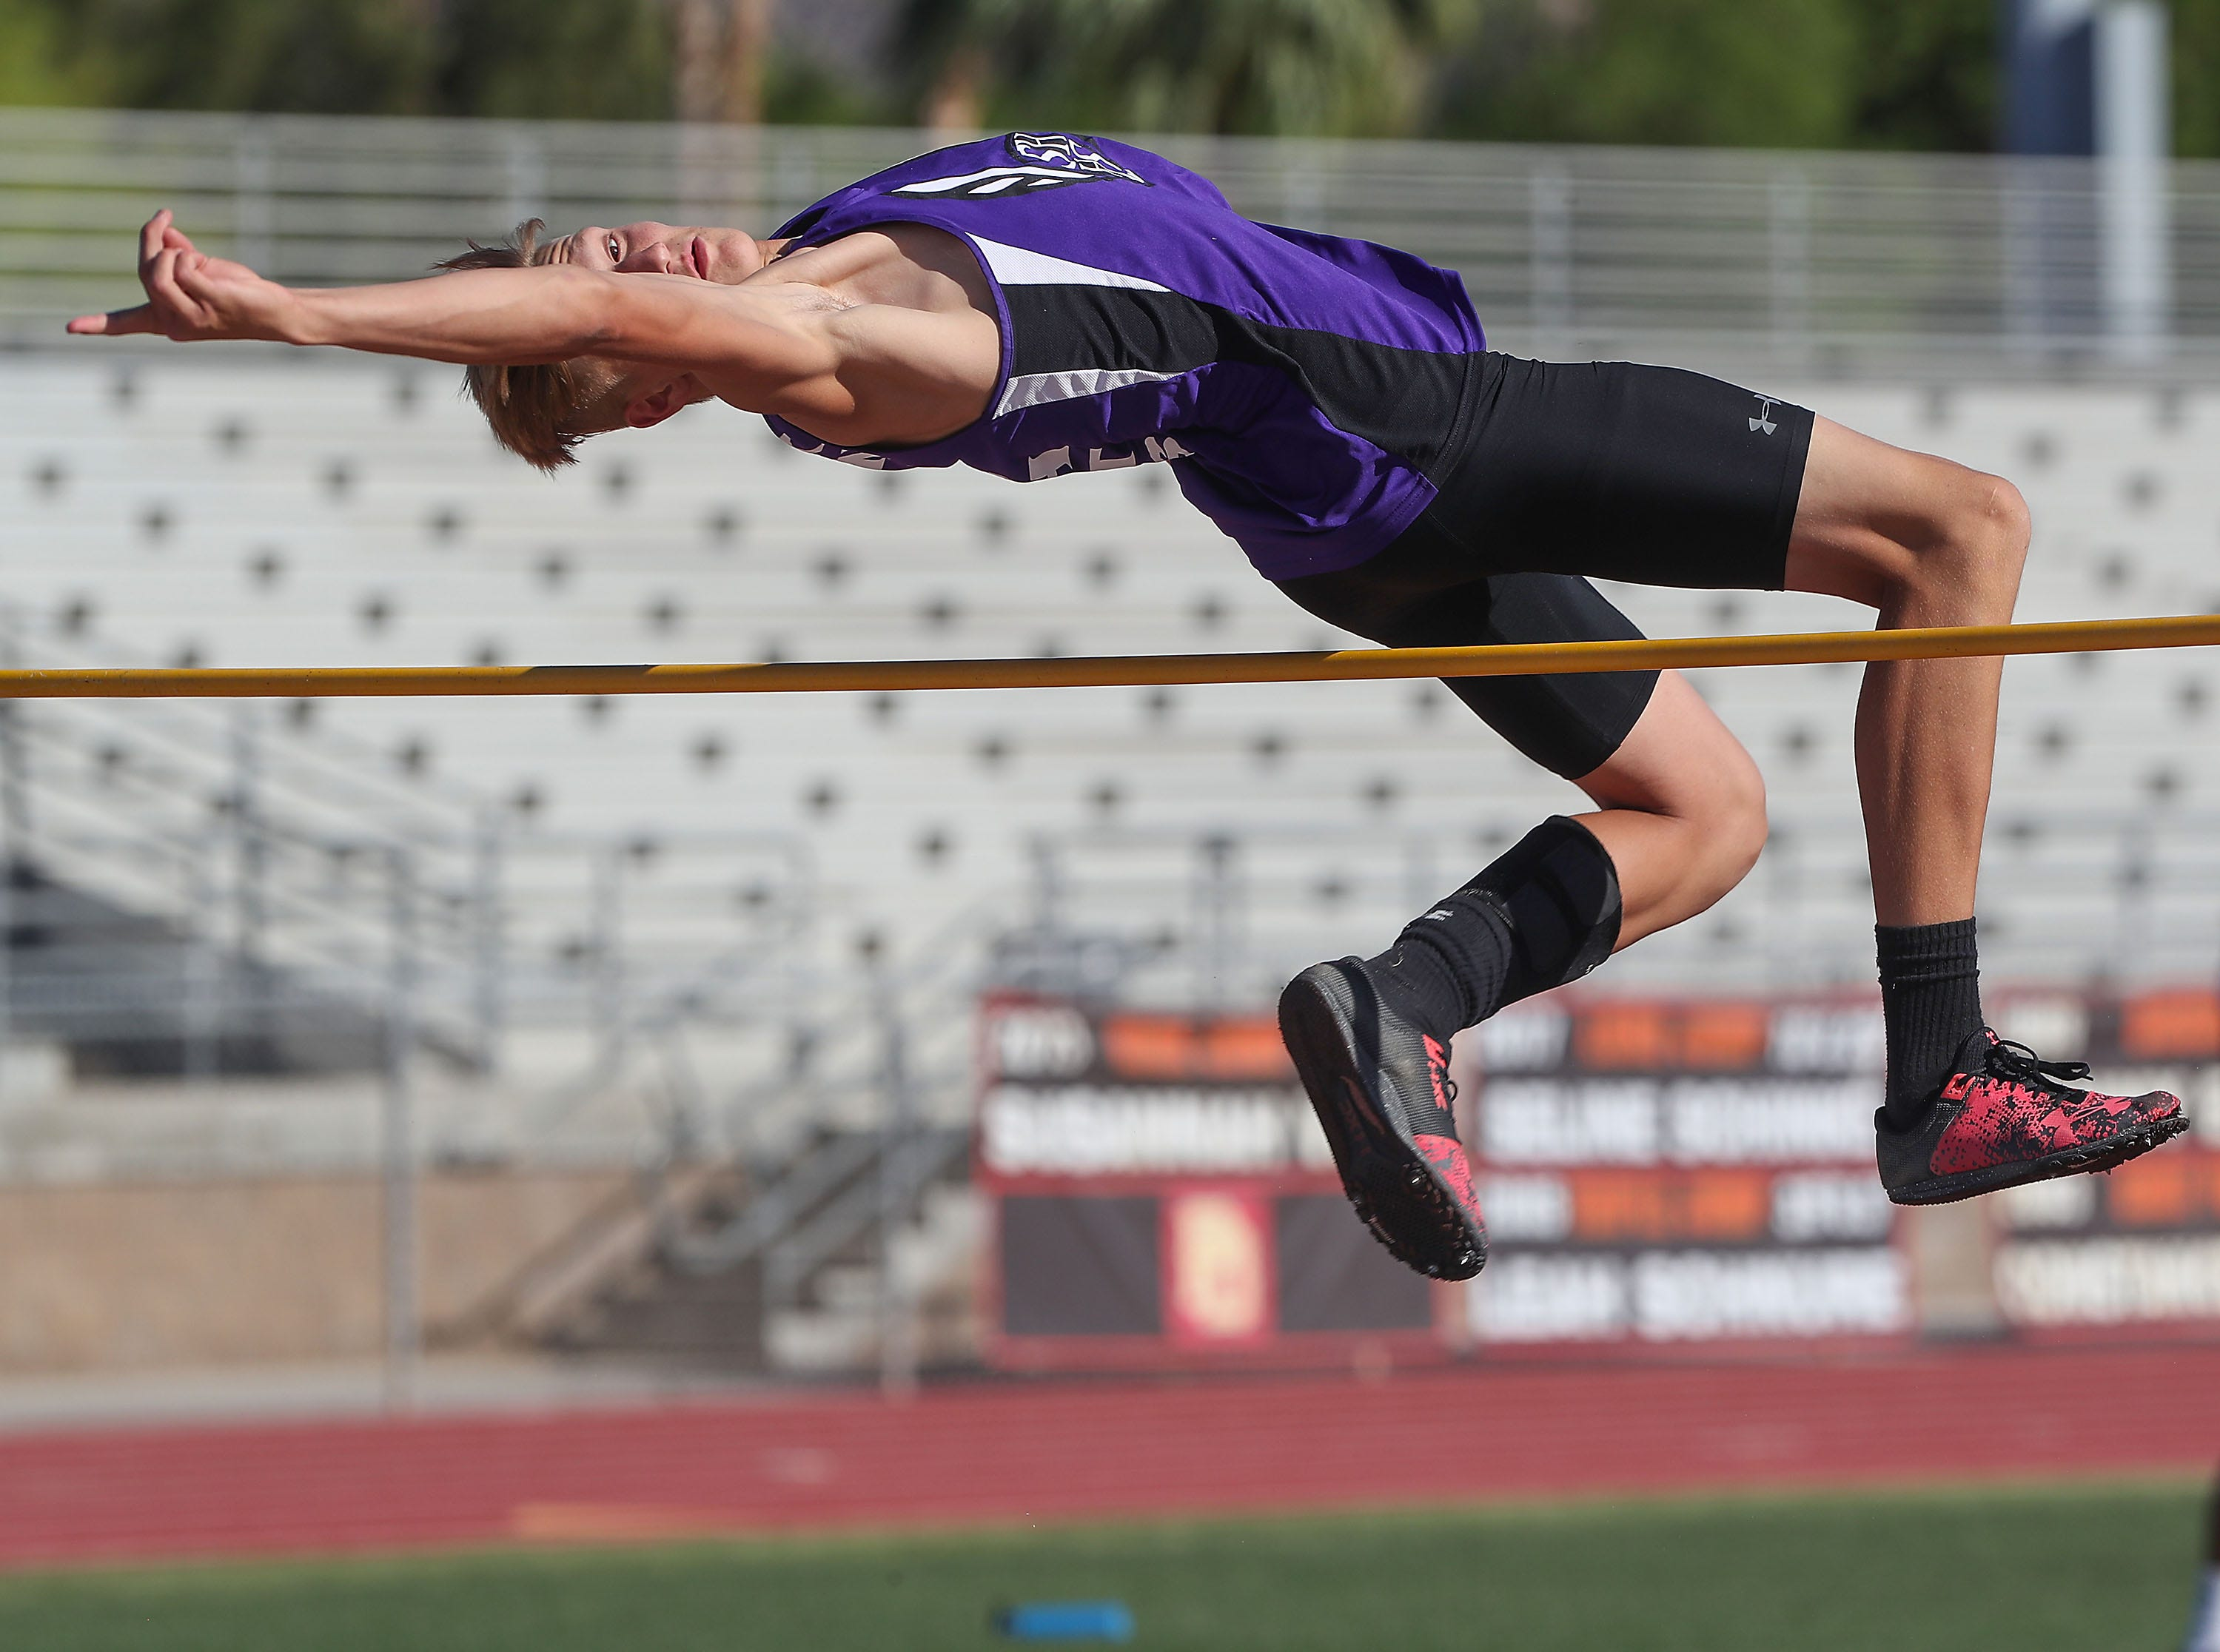 Cord Stansberry wins the high jump during the Desert Empire League track championships at Palm Desert High School, April 23, 2019.